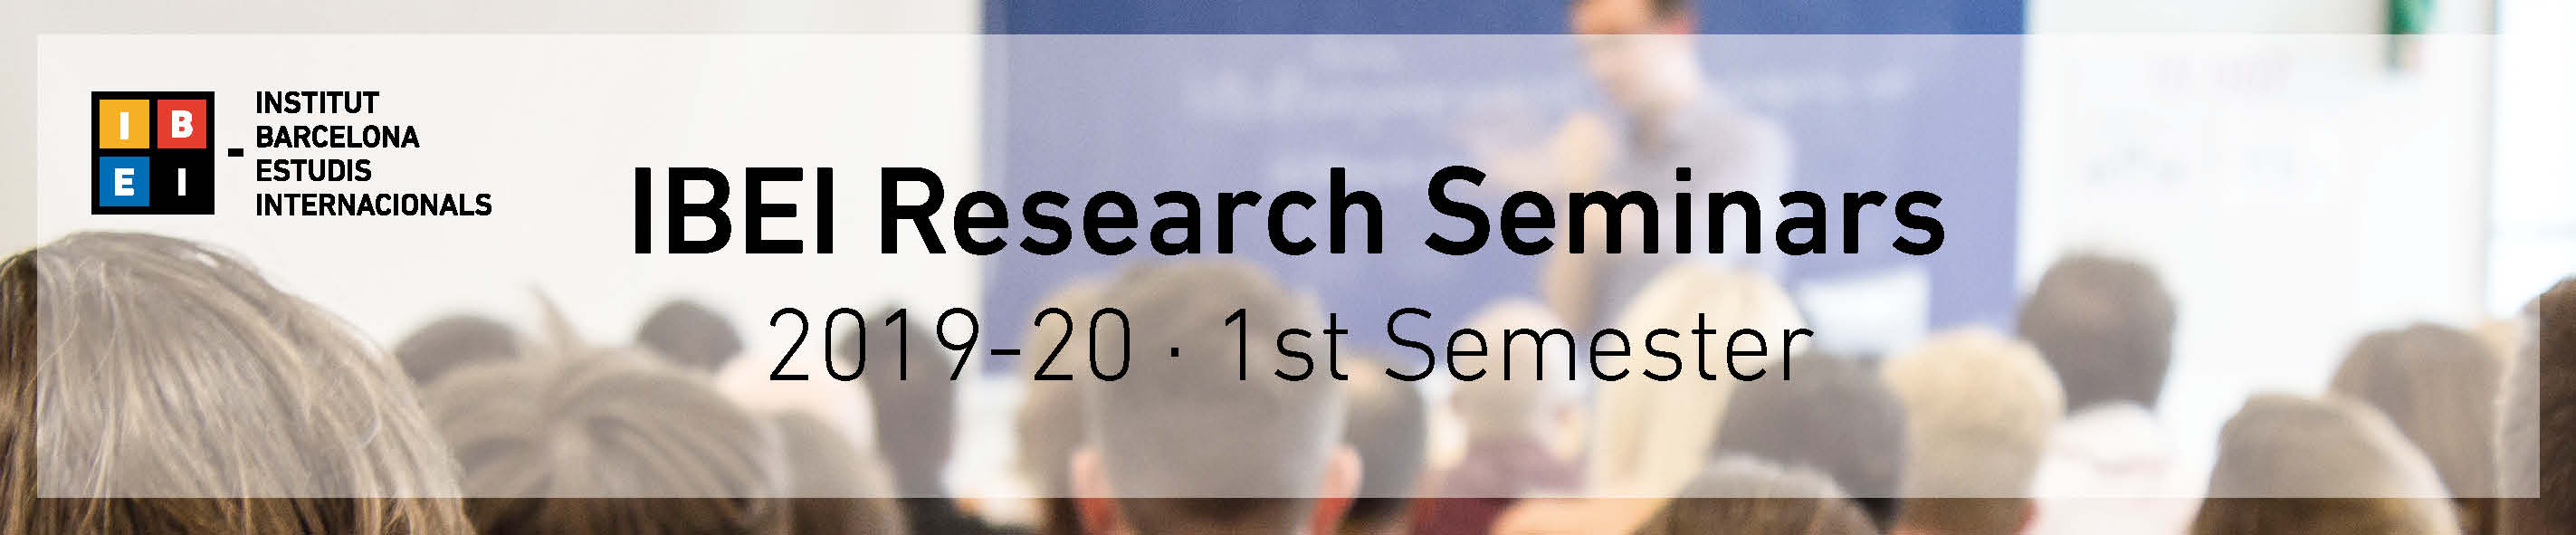 IBEI Research Seminars 2019-20: 1st Semester_capçalera noticia